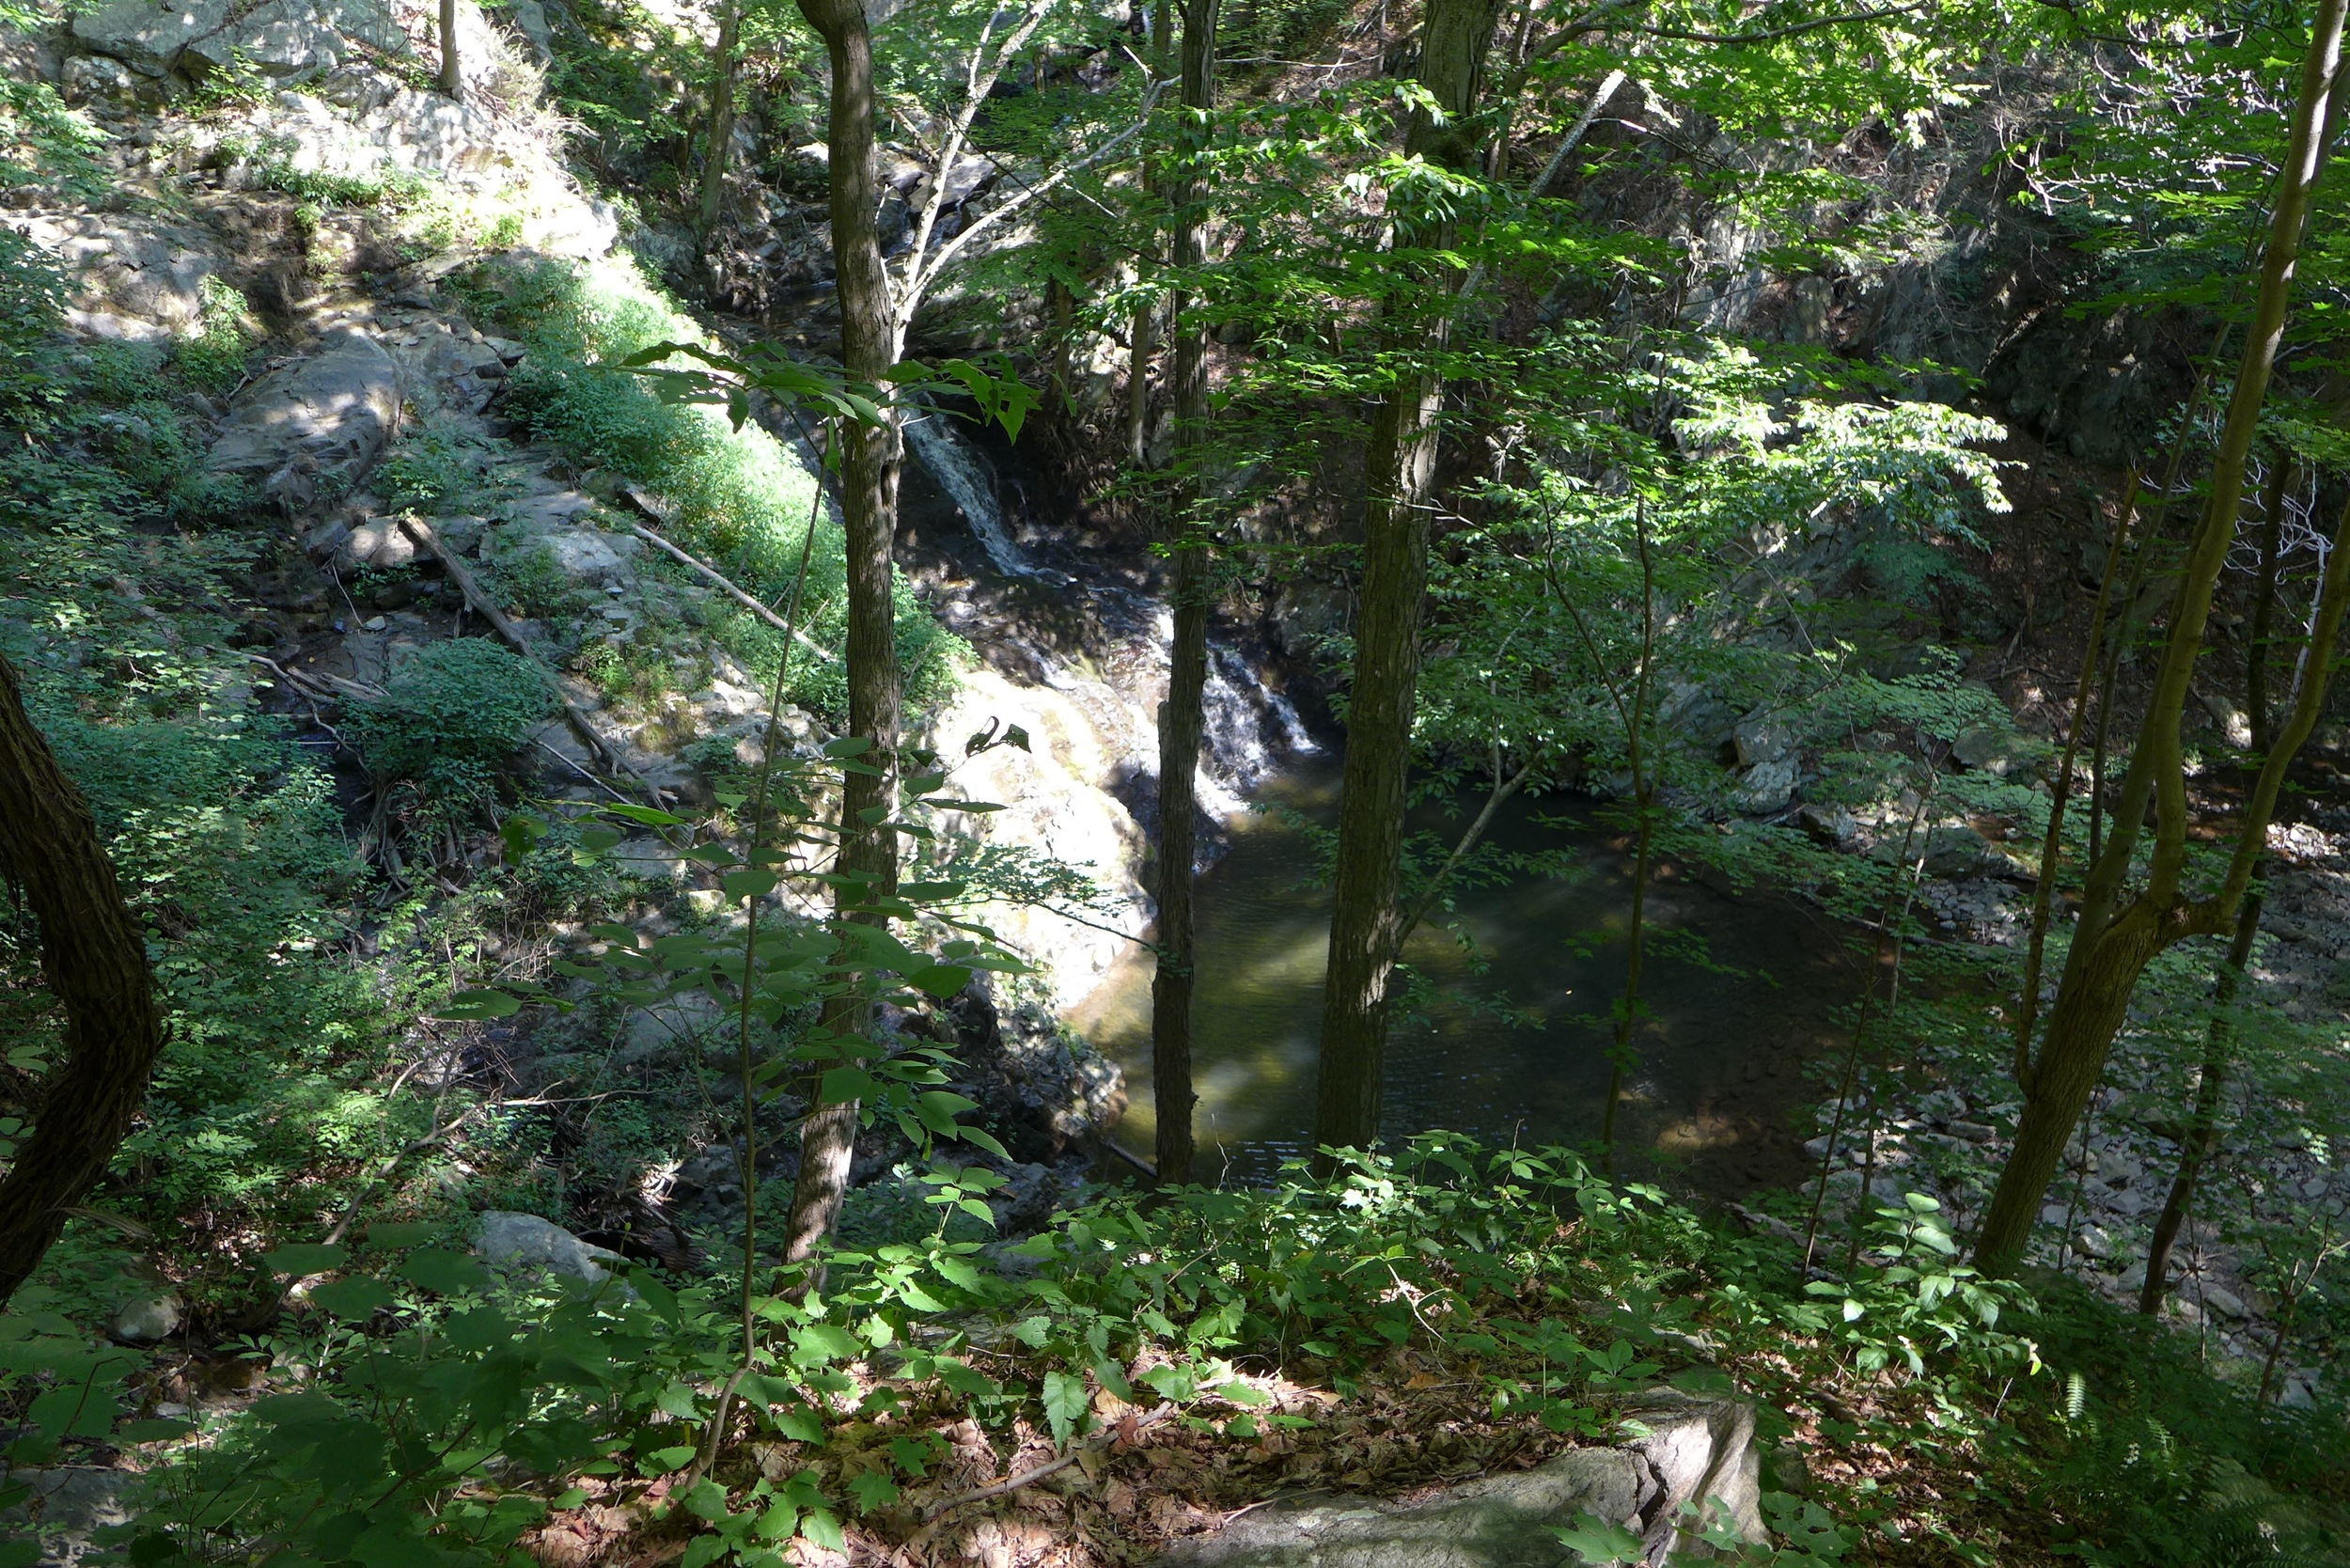 Approaching Philipstown park waterfall